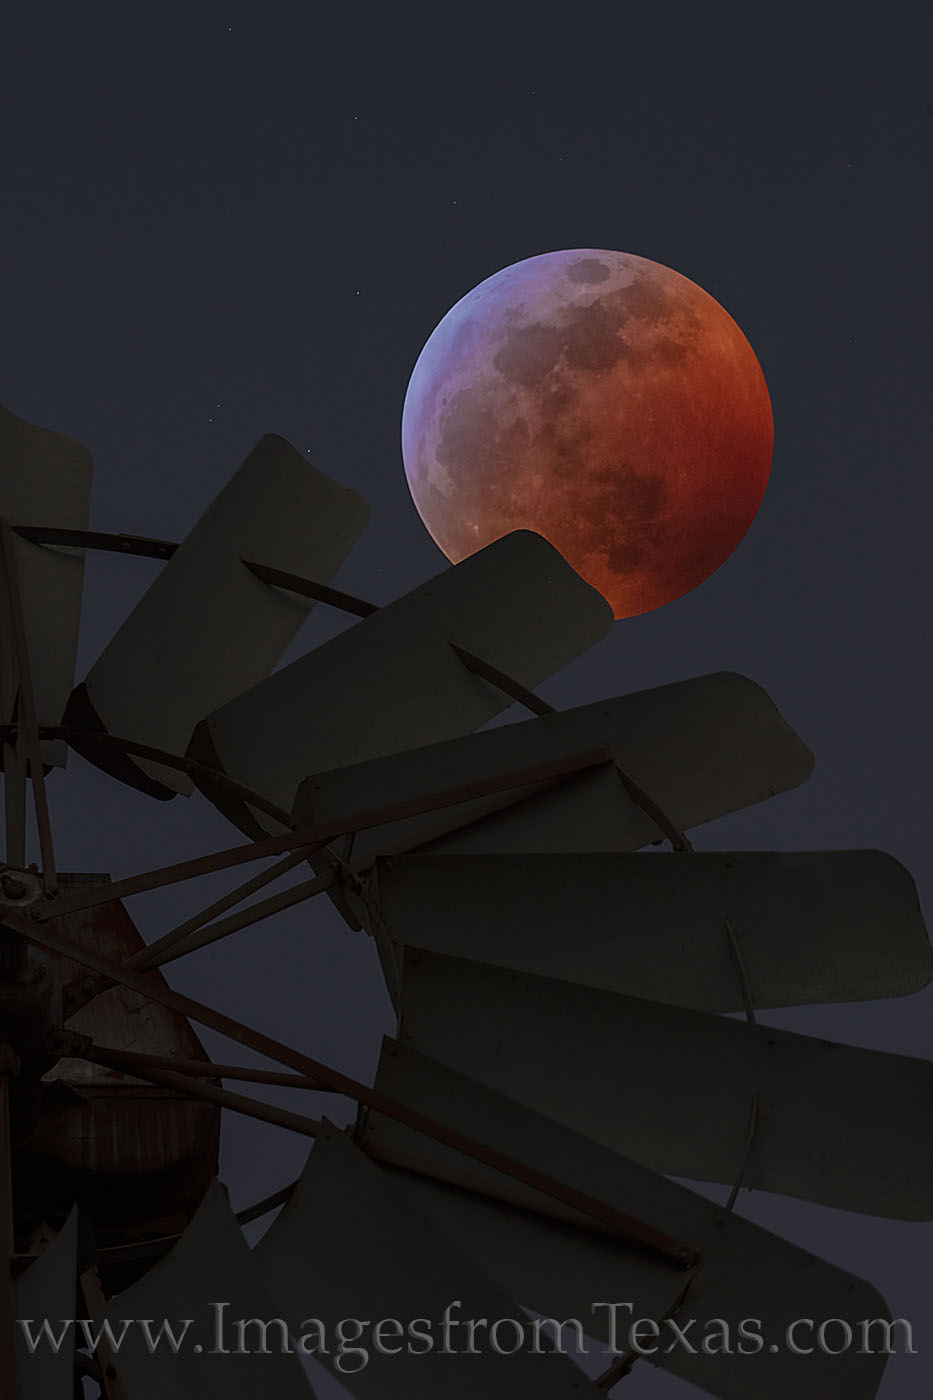 super moon, blood moon, wolf moon, lunar eclipse, texas hill country windmill, night, hill country, total lunar eclipse, red moon, orange moon, full moon, photo